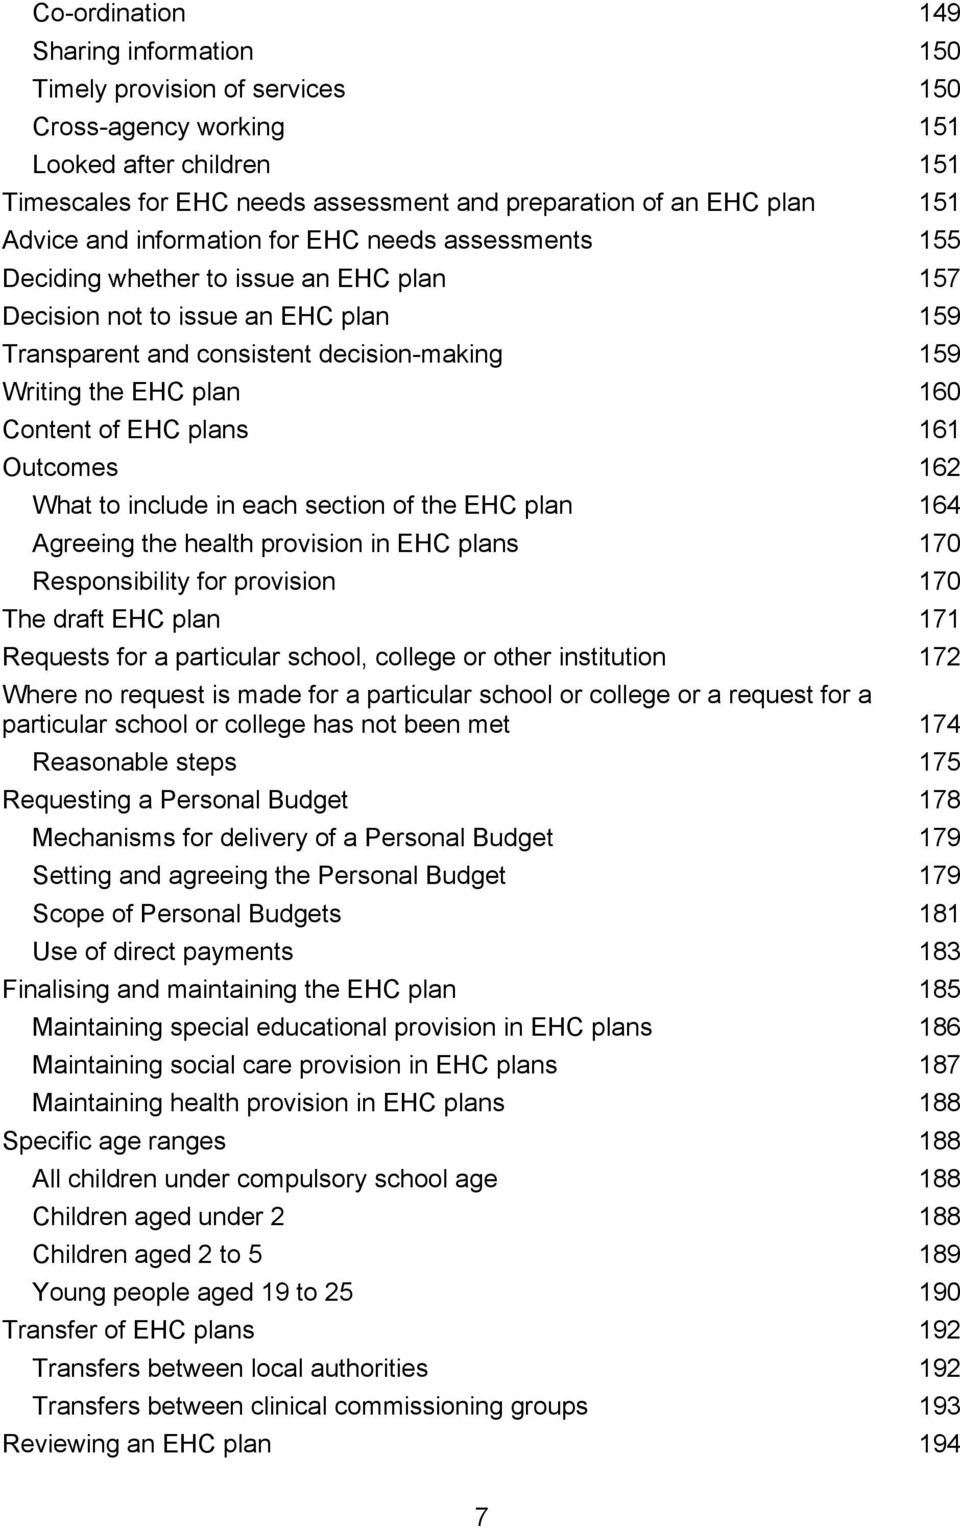 plan 160 Content of EHC plans 161 Outcomes 162 What to include in each section of the EHC plan 164 Agreeing the health provision in EHC plans 170 Responsibility for provision 170 The draft EHC plan